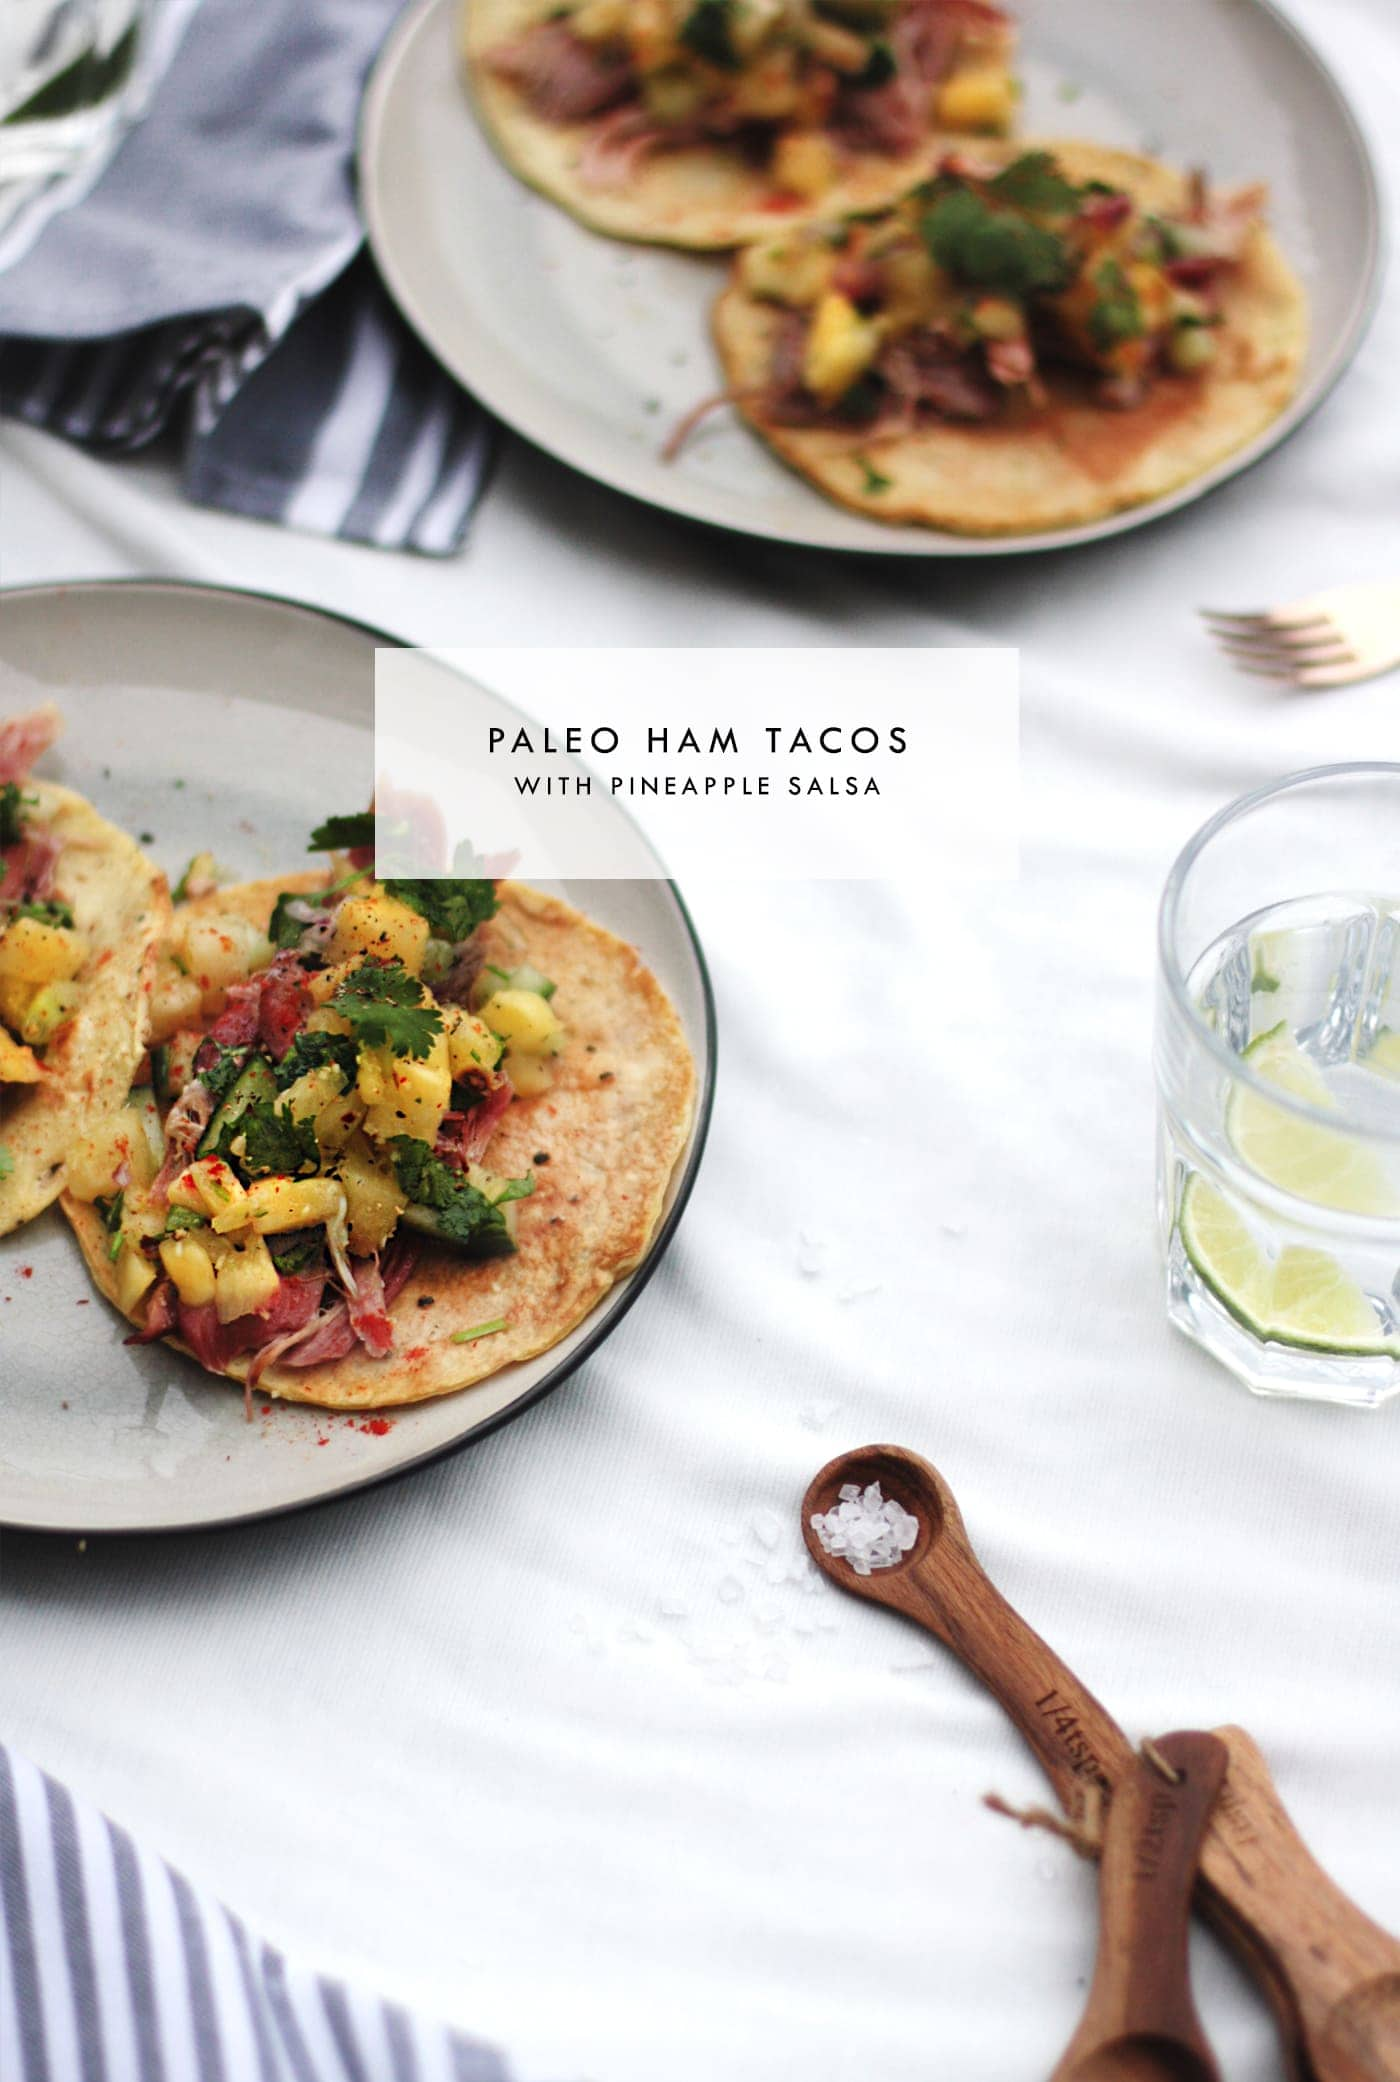 Paleo ham tortillas with pineapple salsa | gluten free | grain free | dairy free | perfect for a summer evening